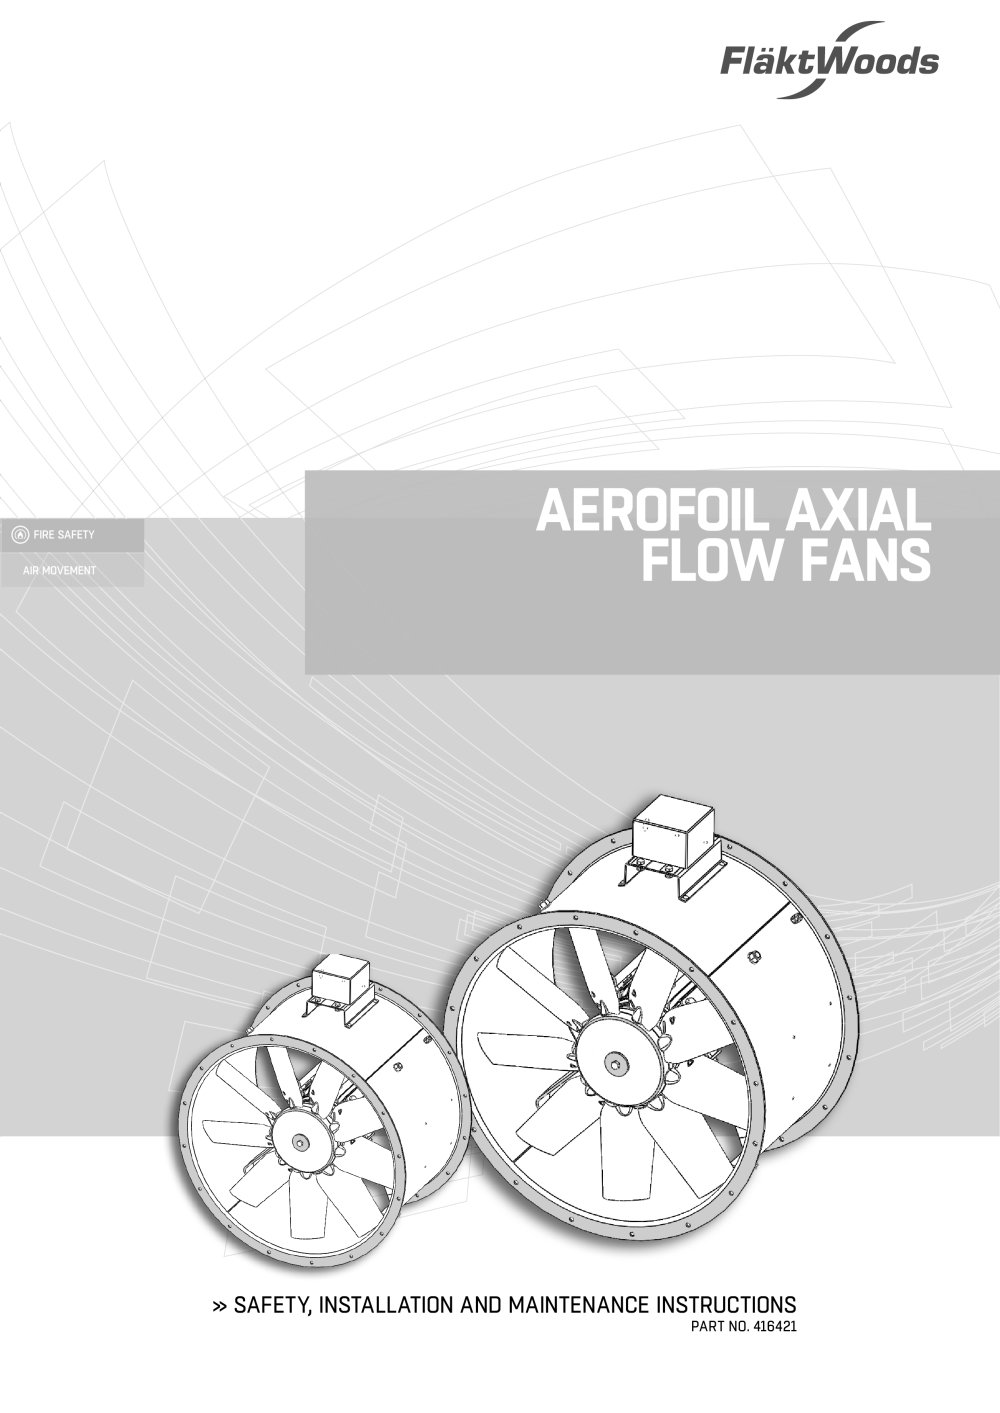 aerofoil axial flow fans 261294_1b aerofoil axial flow fans flakt woods pdf catalogues flakt woods fan wiring diagram at bayanpartner.co